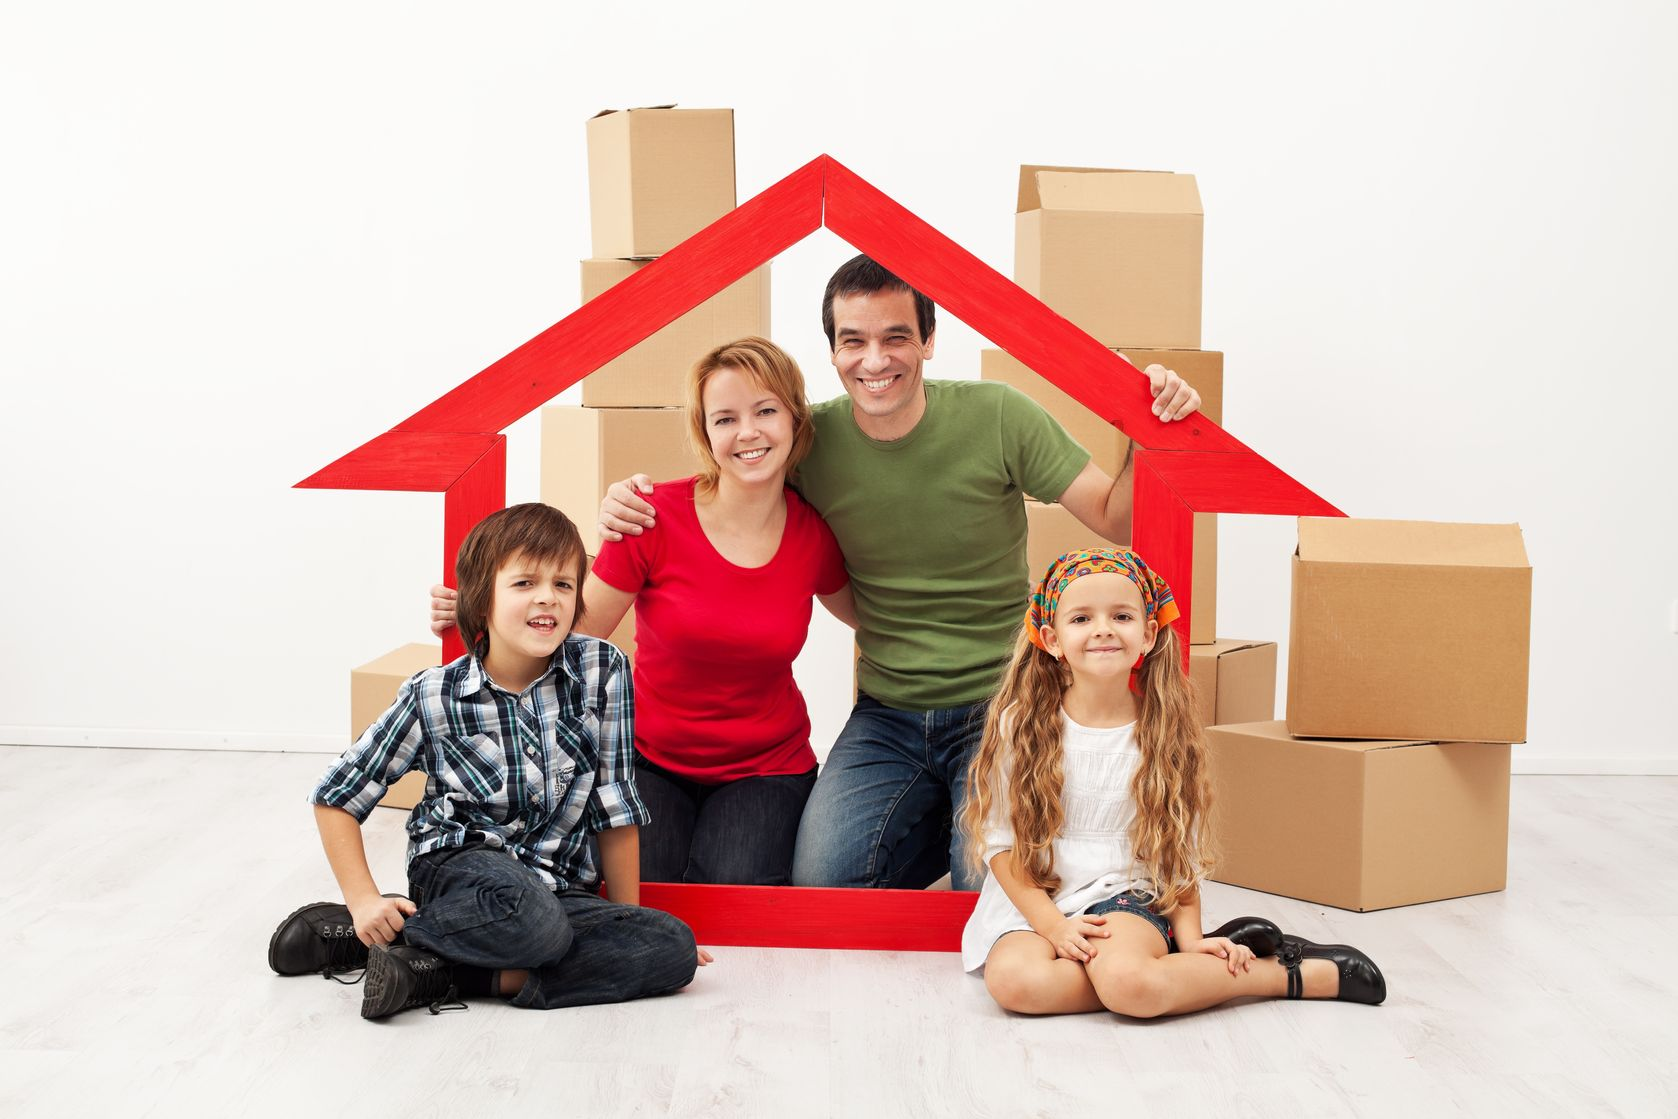 Seattle, Bellevue, WA. Homeowners Insurance